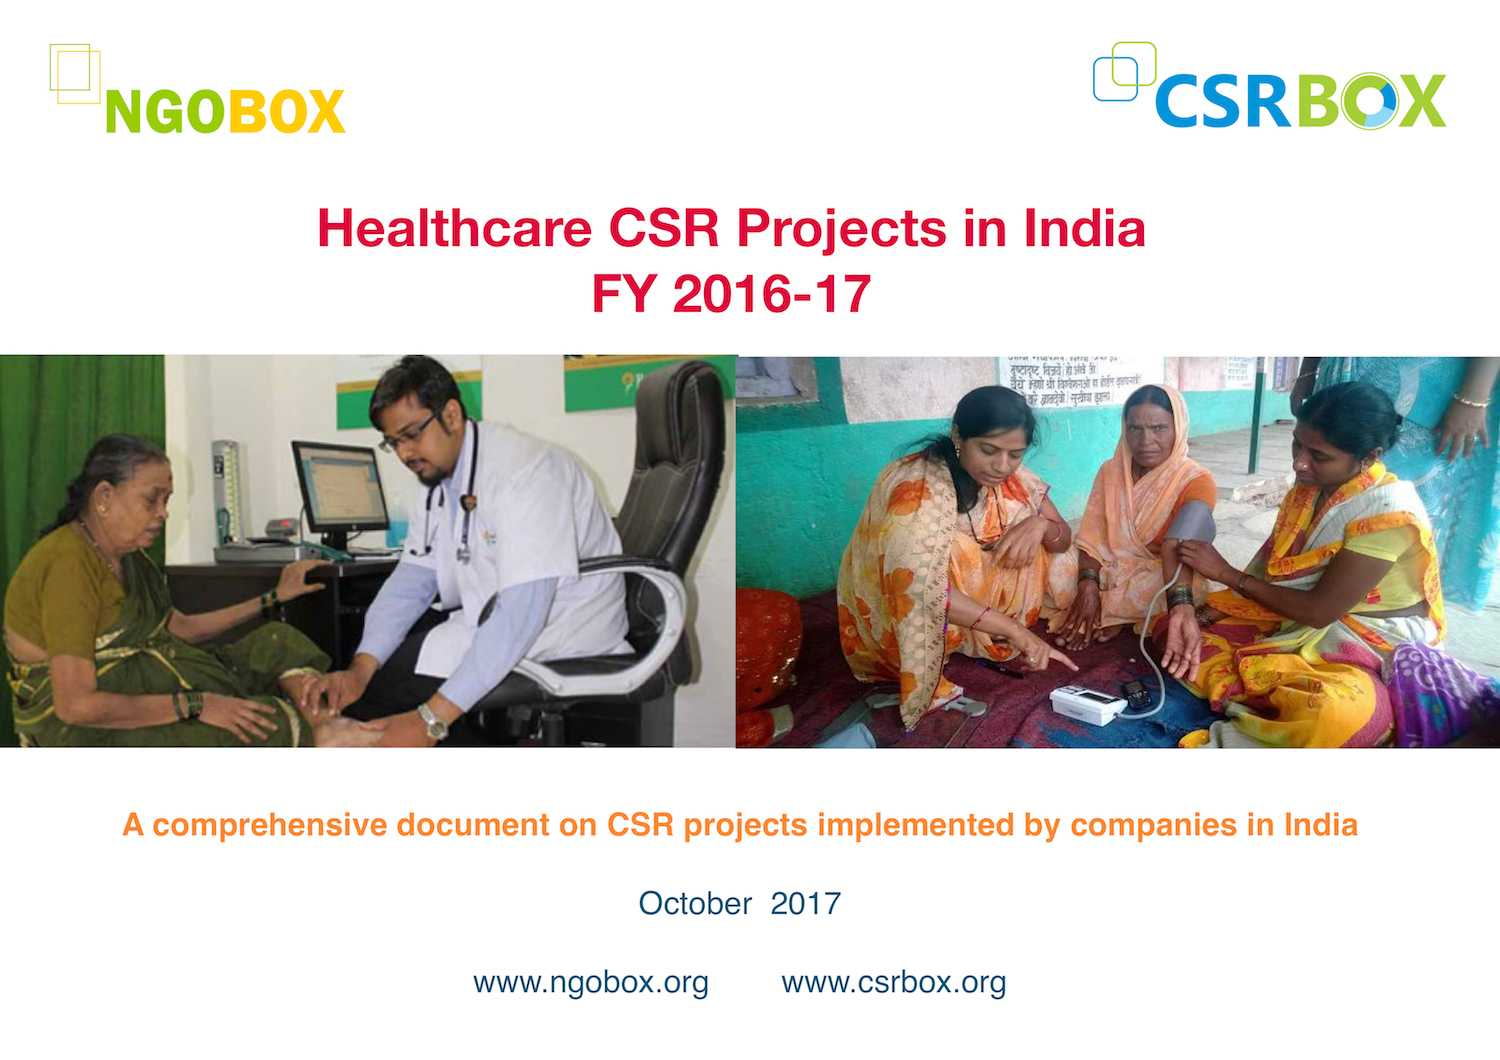 Healthcare CSR Projects in India in 2016-17